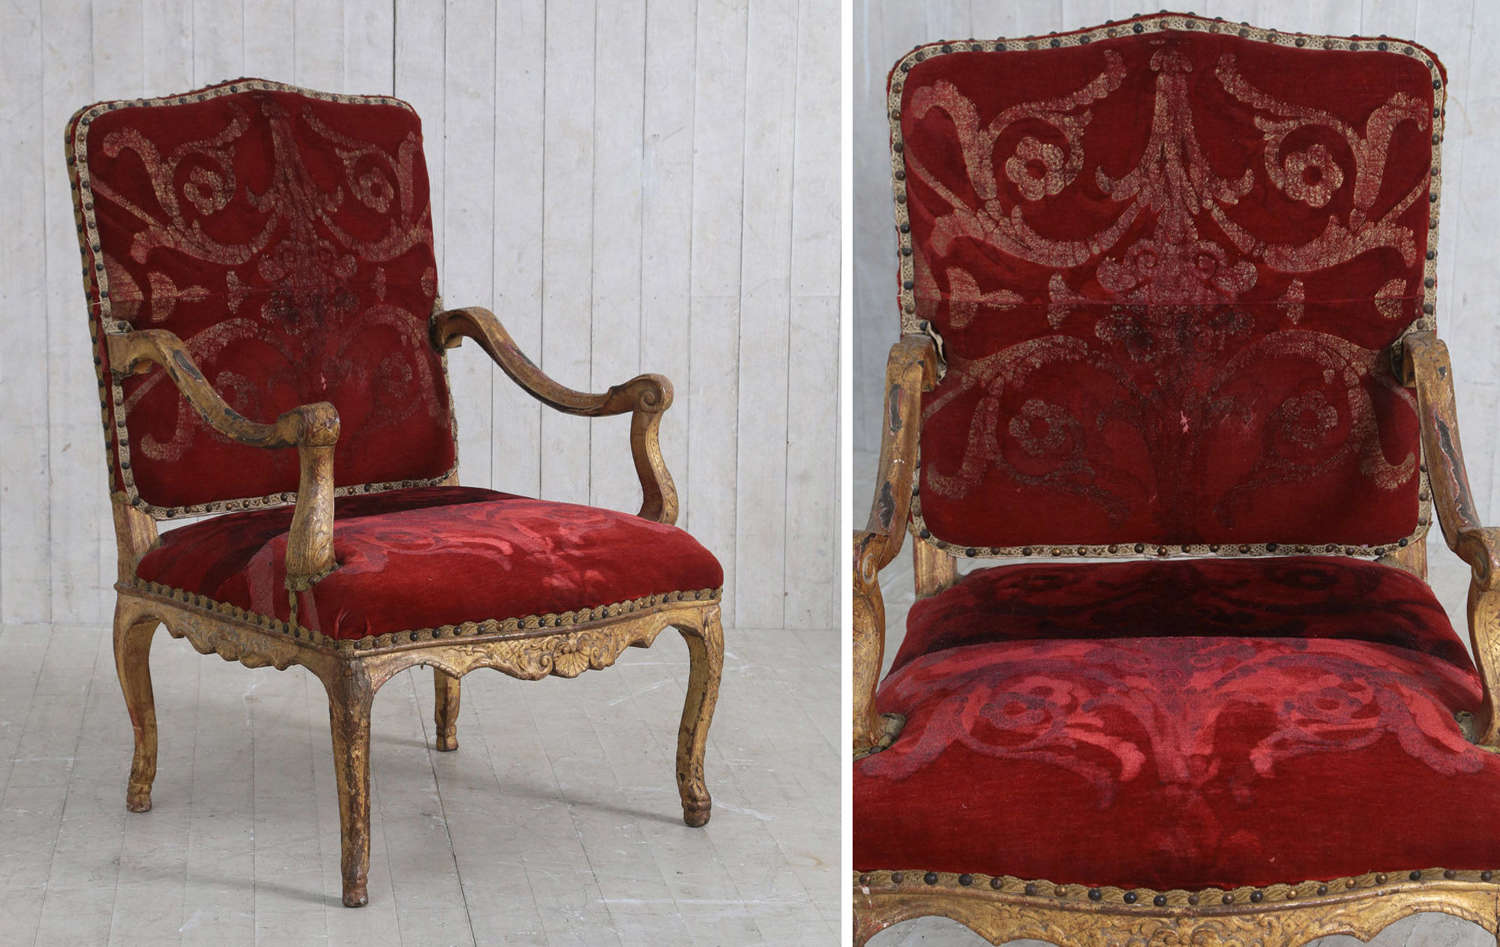 18th century French carved Giltwood Regence armchair